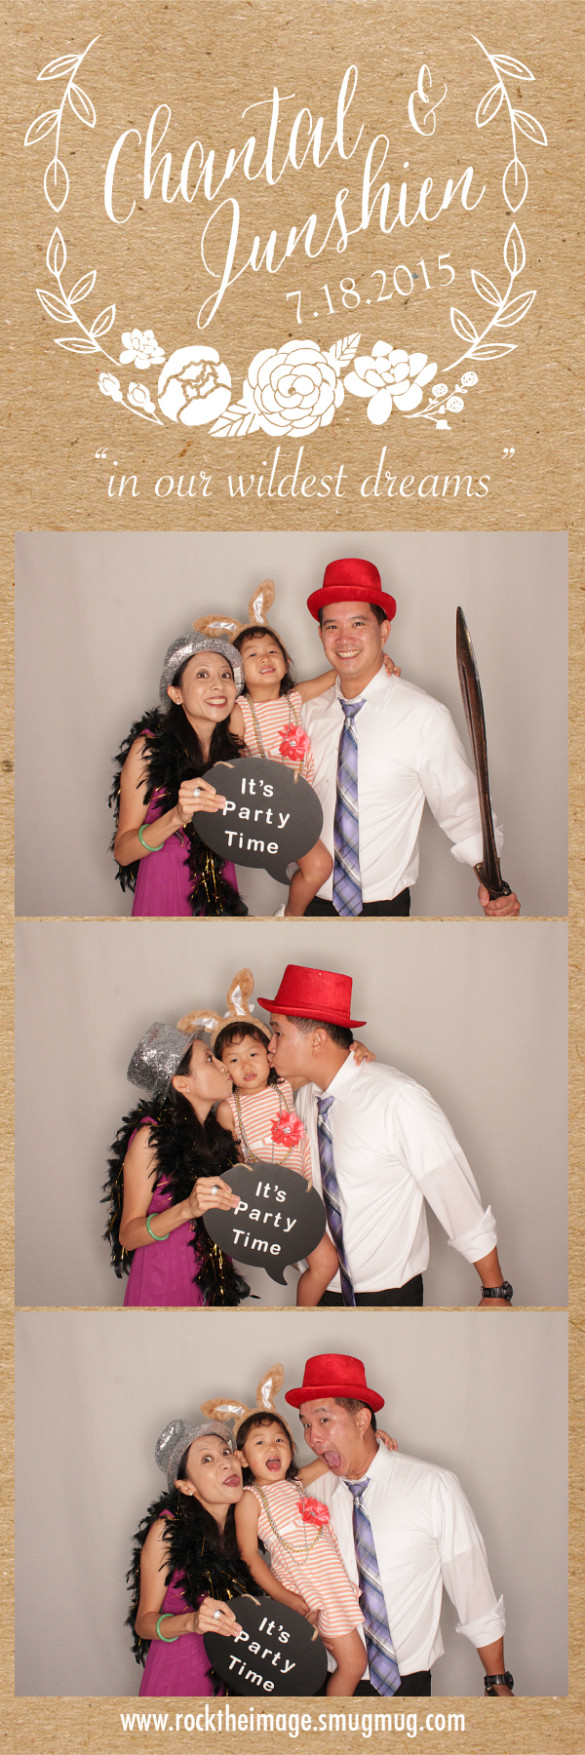 Photo booth pics at Junshien & Chantal's Wedding Credit: Rock the Image